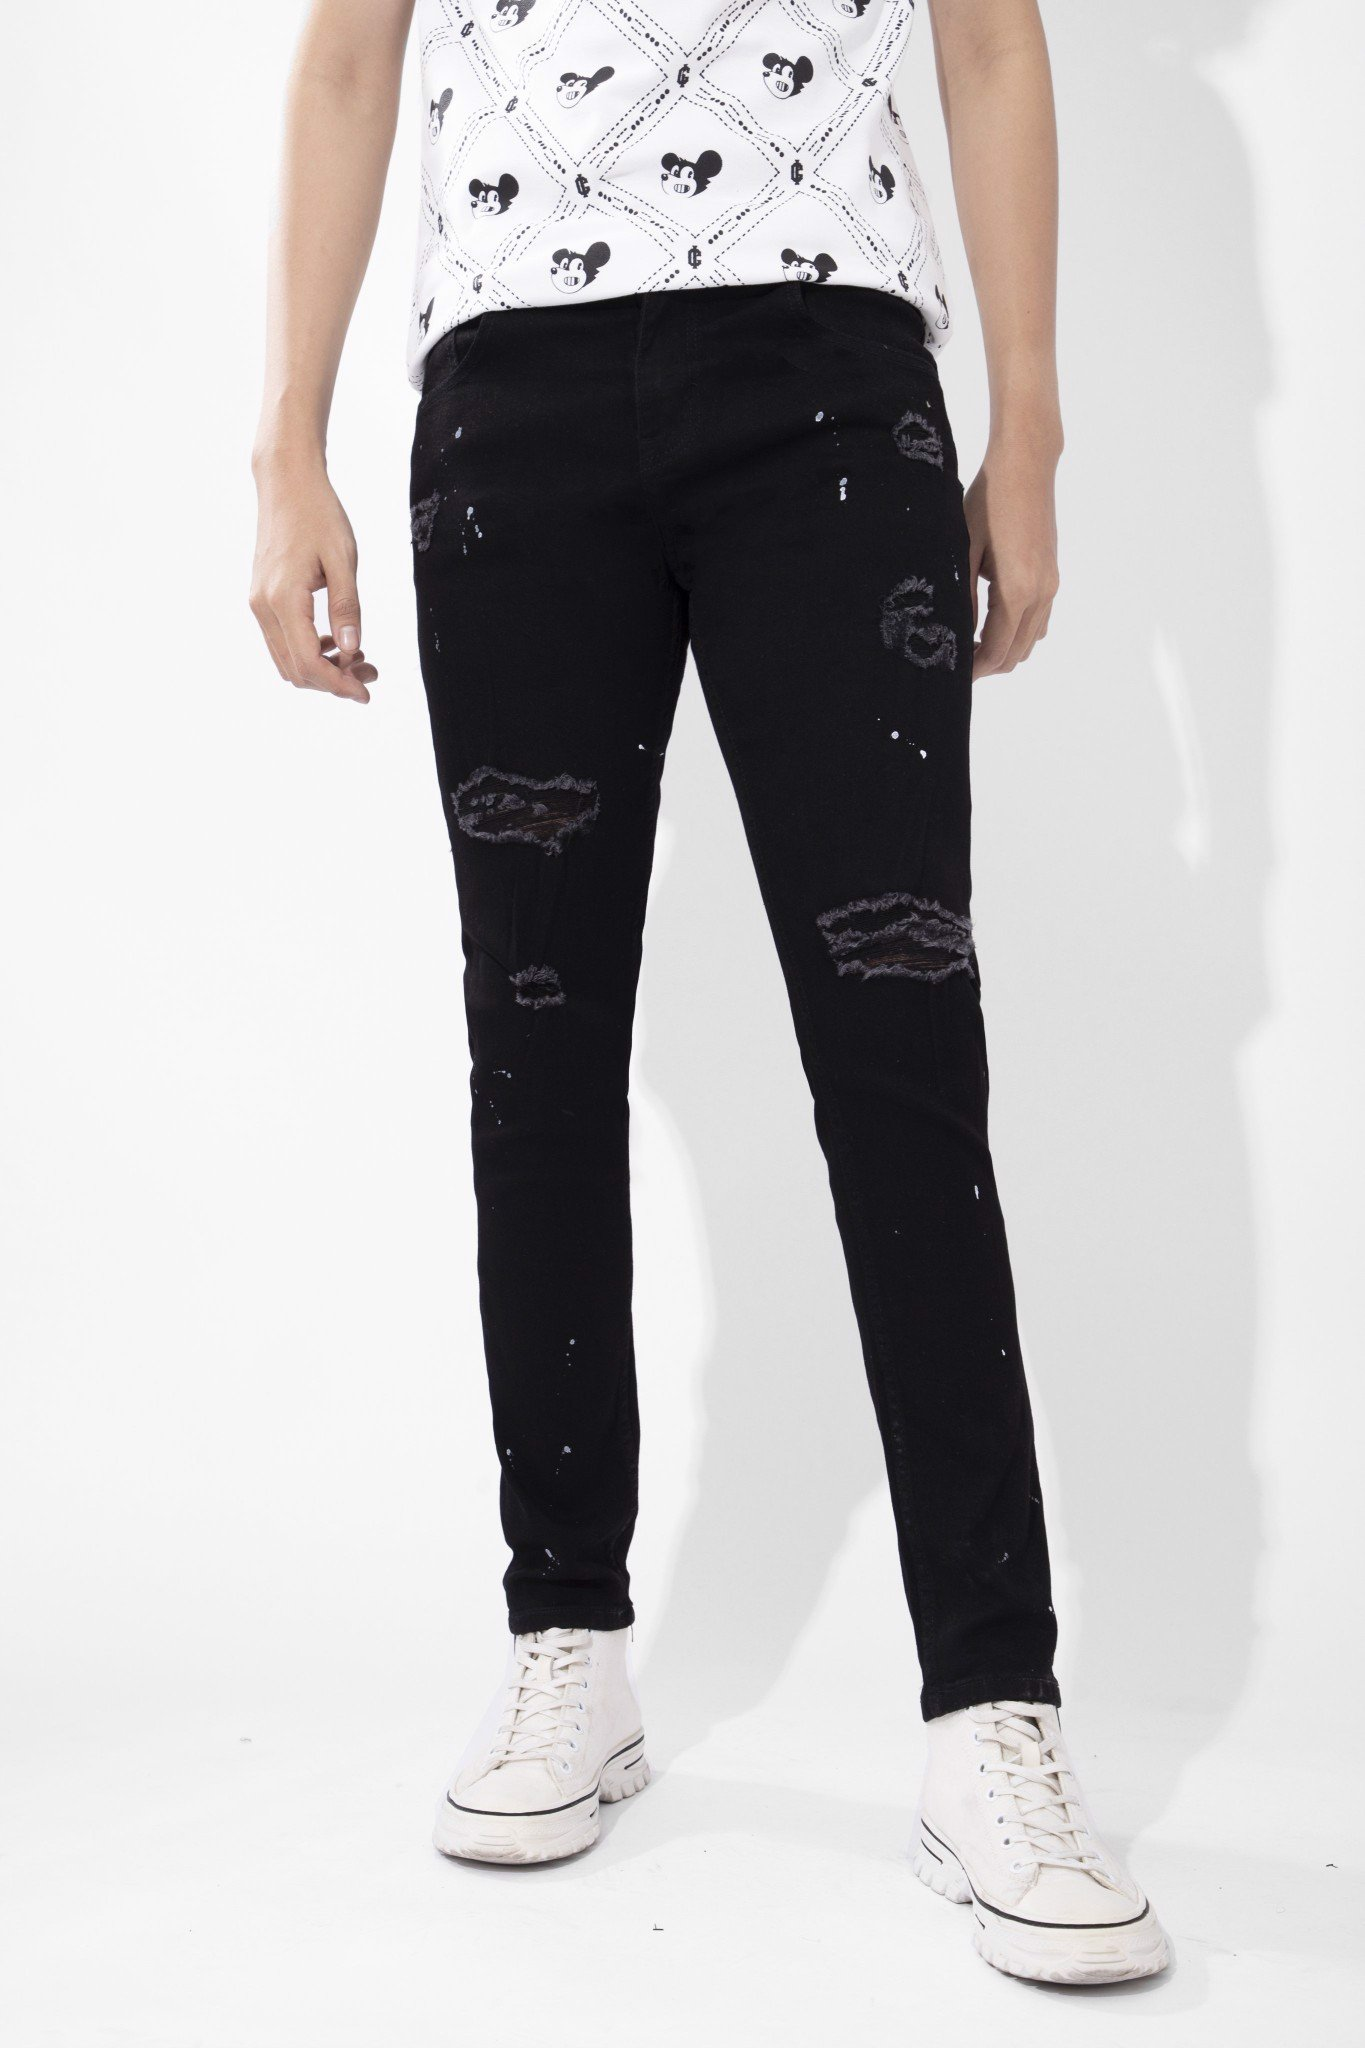 Quần Jeans Skinny All Black W Splatter